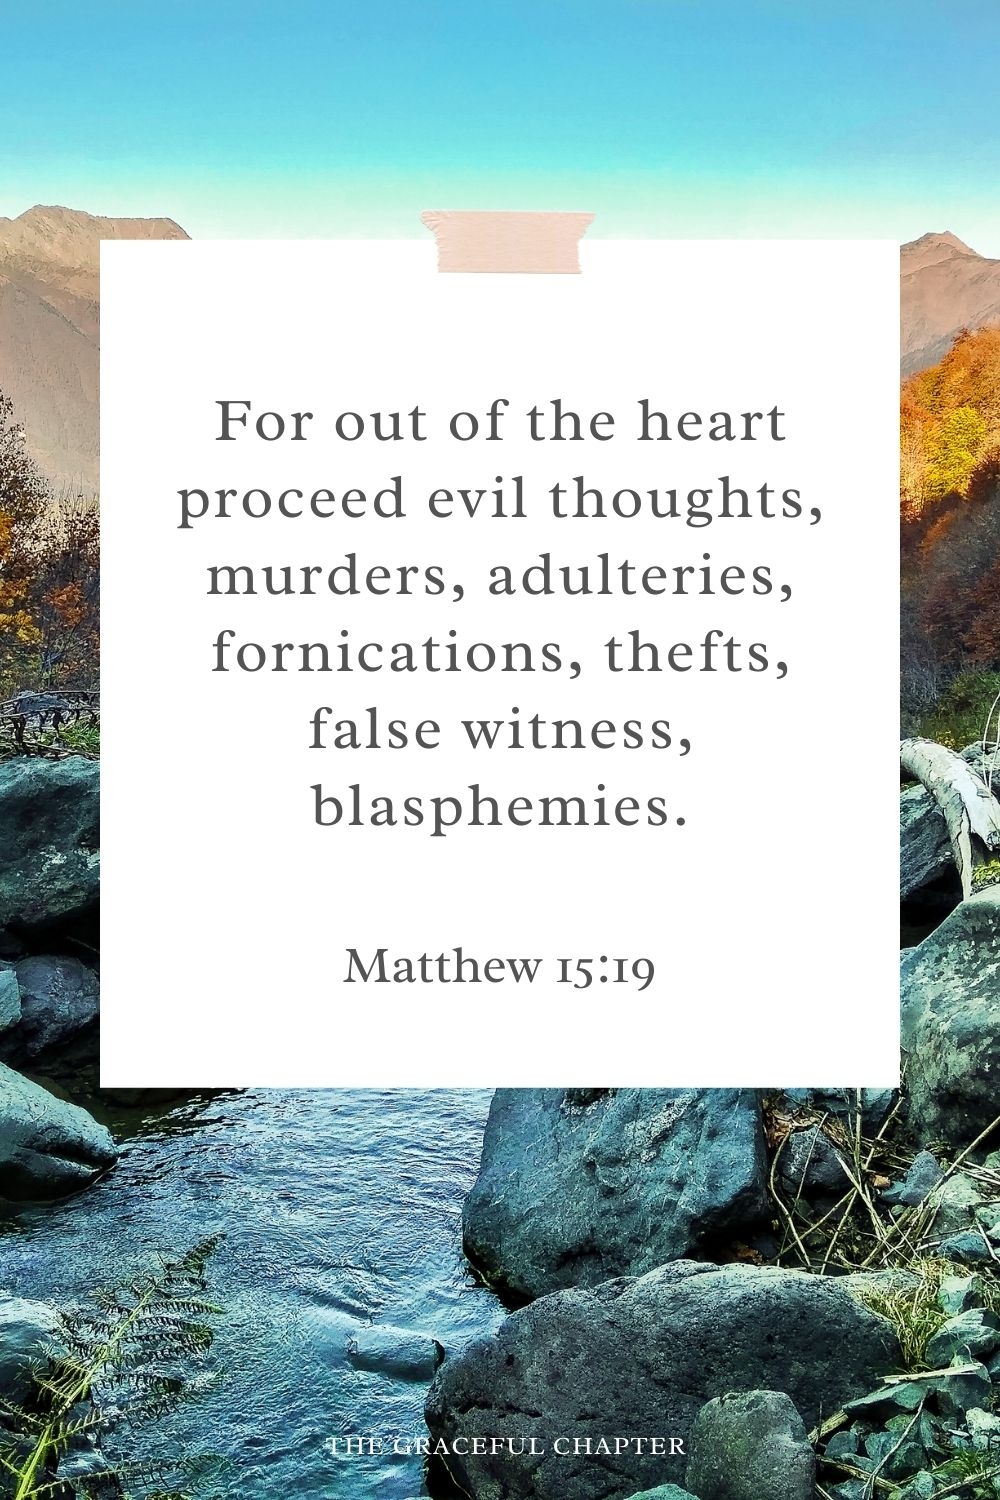 For out of the heart proceed evil thoughts, murders, adulteries, fornications, thefts, false witness, blasphemies. Matthew 15:19